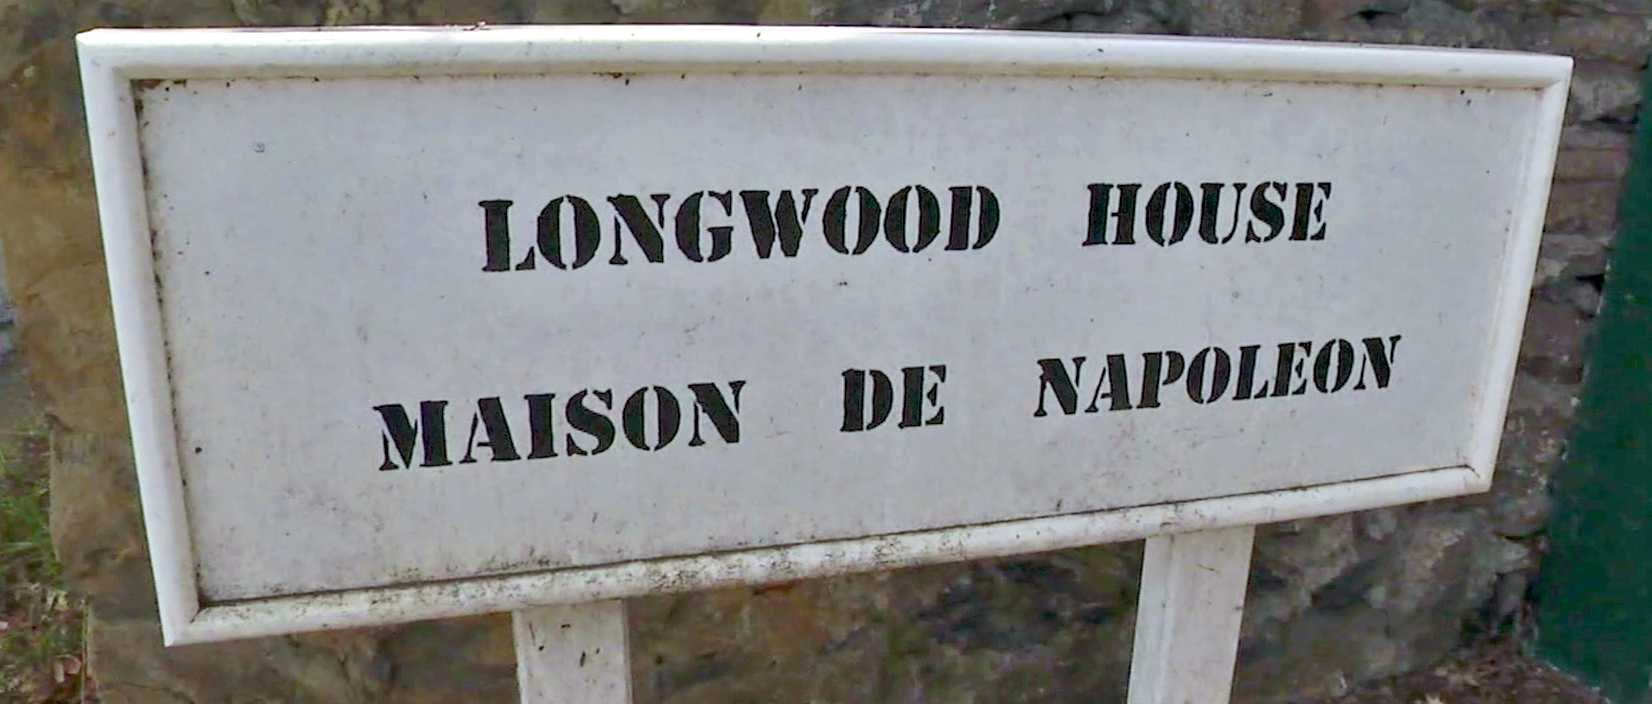 Longwood House sign